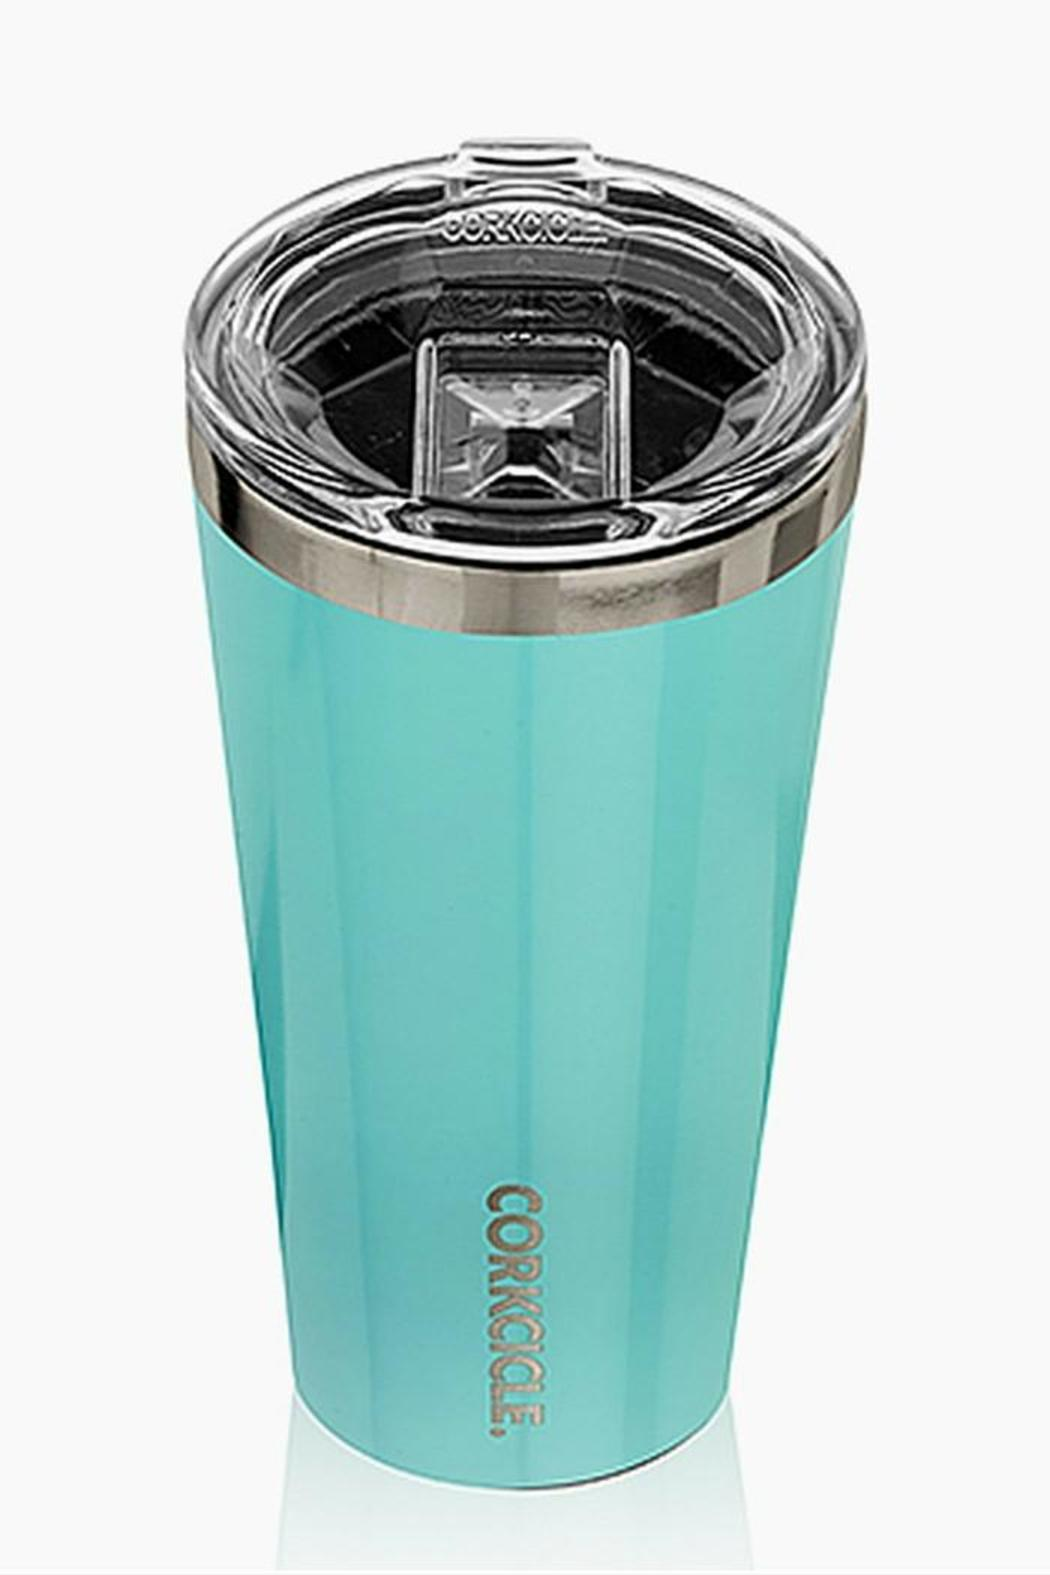 Corkcicle 16oz Tumbler From Kentucky By The Mole Hole Of